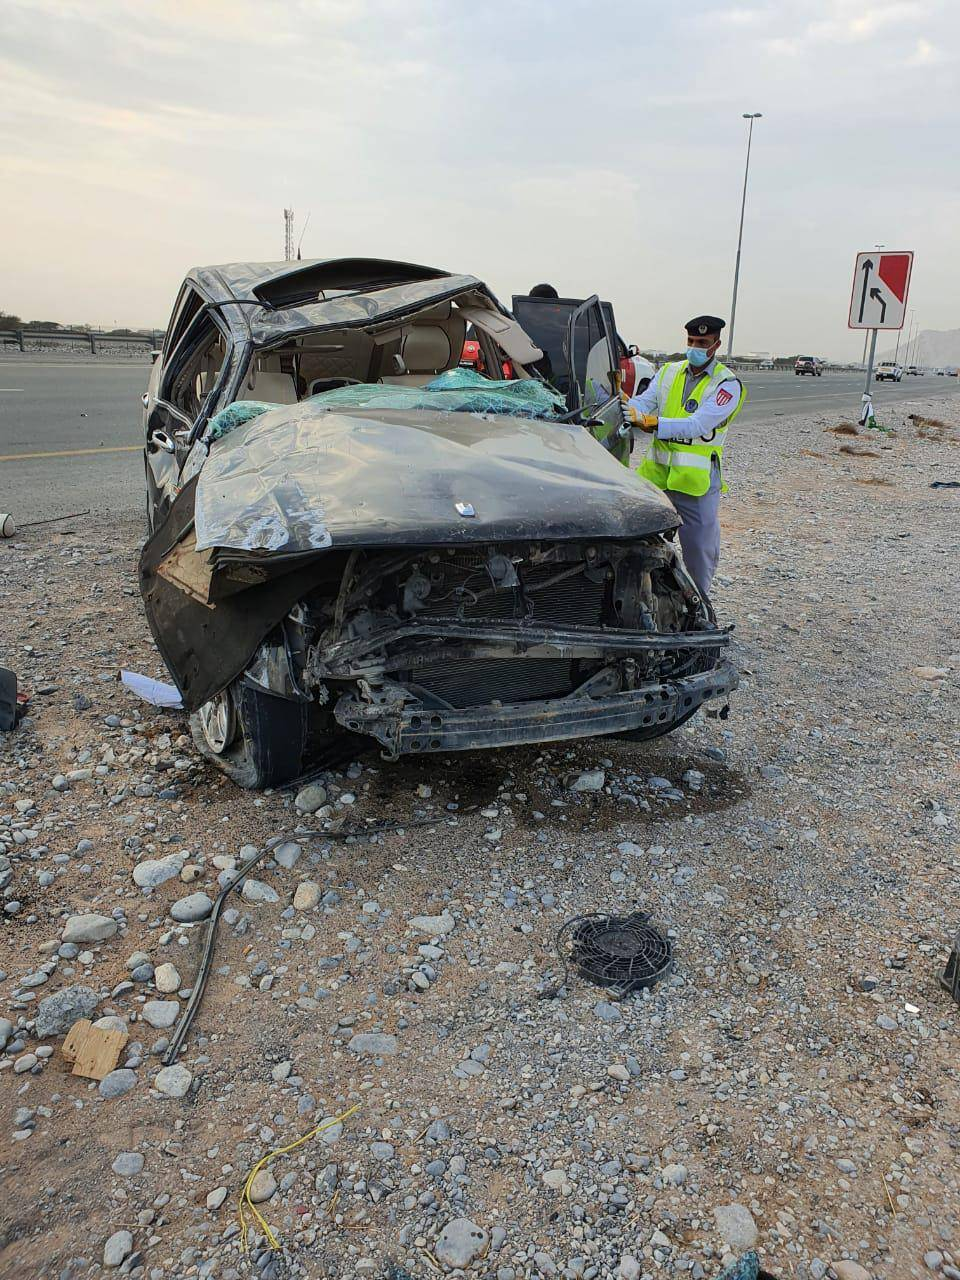 UAE: Two brothers killed in Ras Al Khaimah road crash